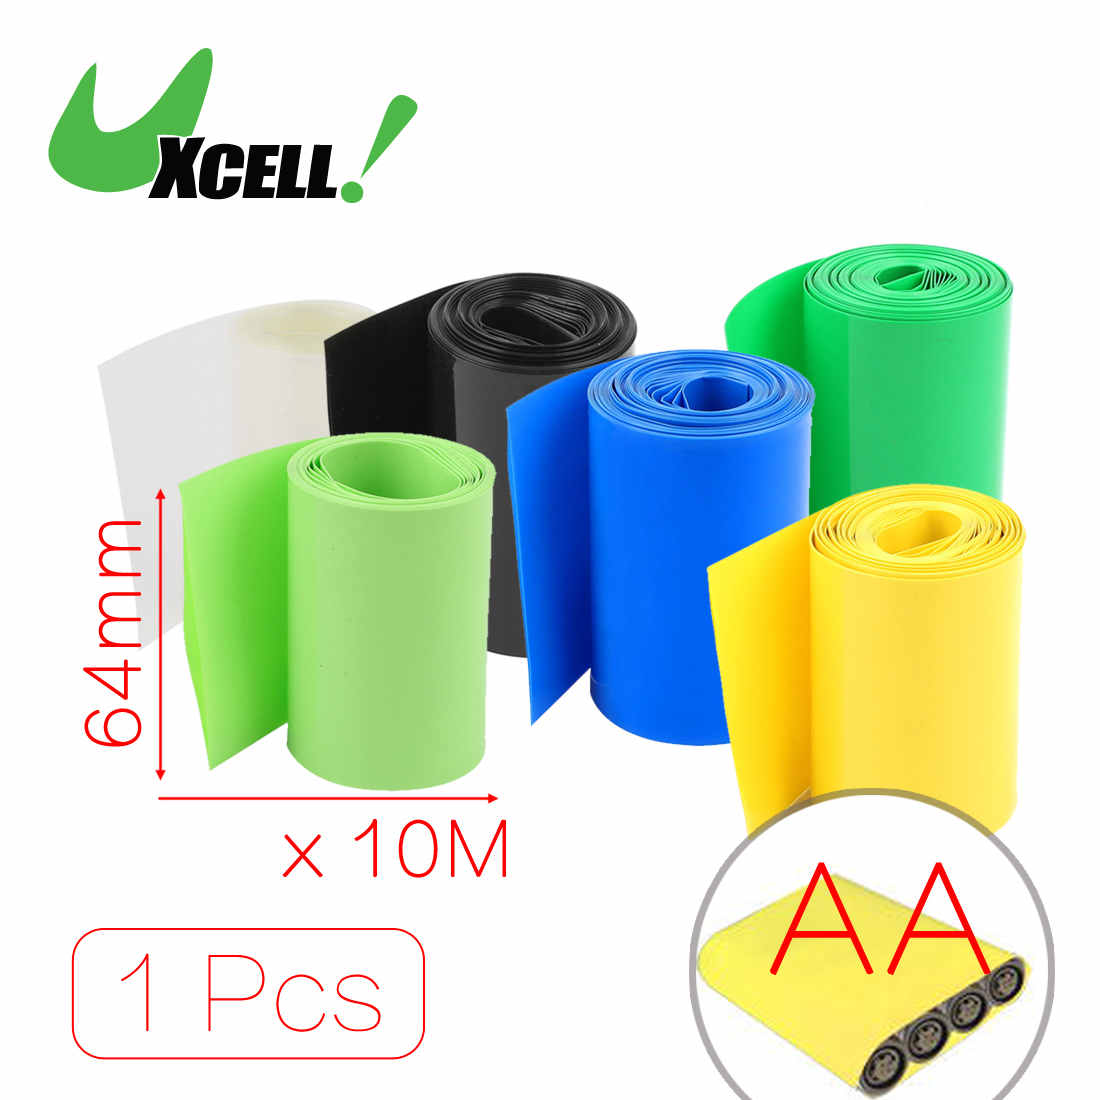 Uxcell 10Meters 64Mm Width Pvc Heat Shrink Wrap Green For Aa Battery Pack . | black | blue | clear | green | yellow